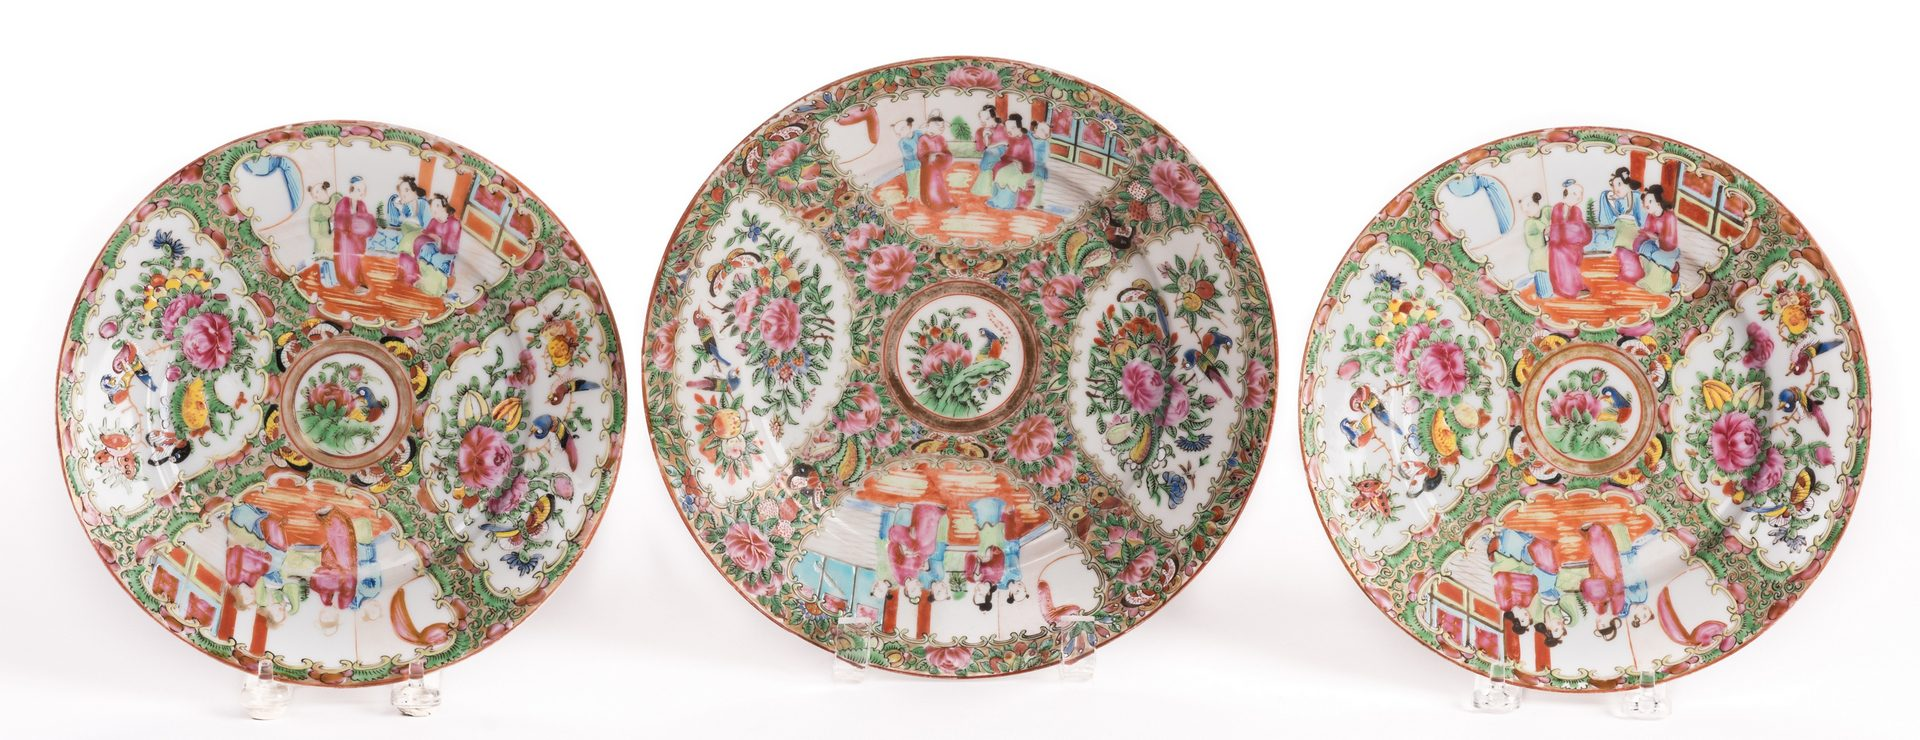 Lot 138: 8 Chinese Porcelain items, incl. Rose Medallion